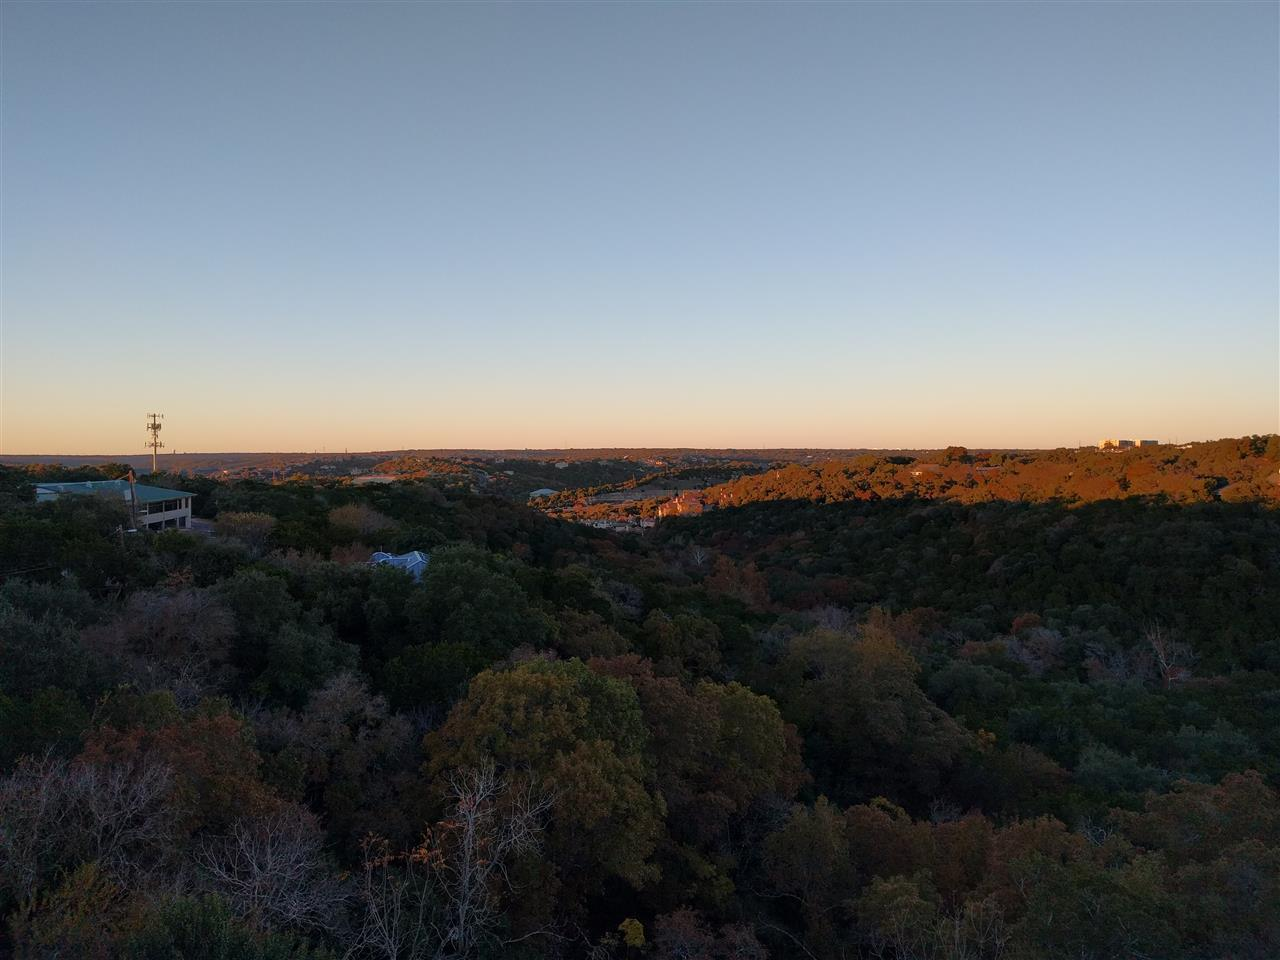 North-West Hills - Sunset lit up view of the lovely community  15 min from DT Austin